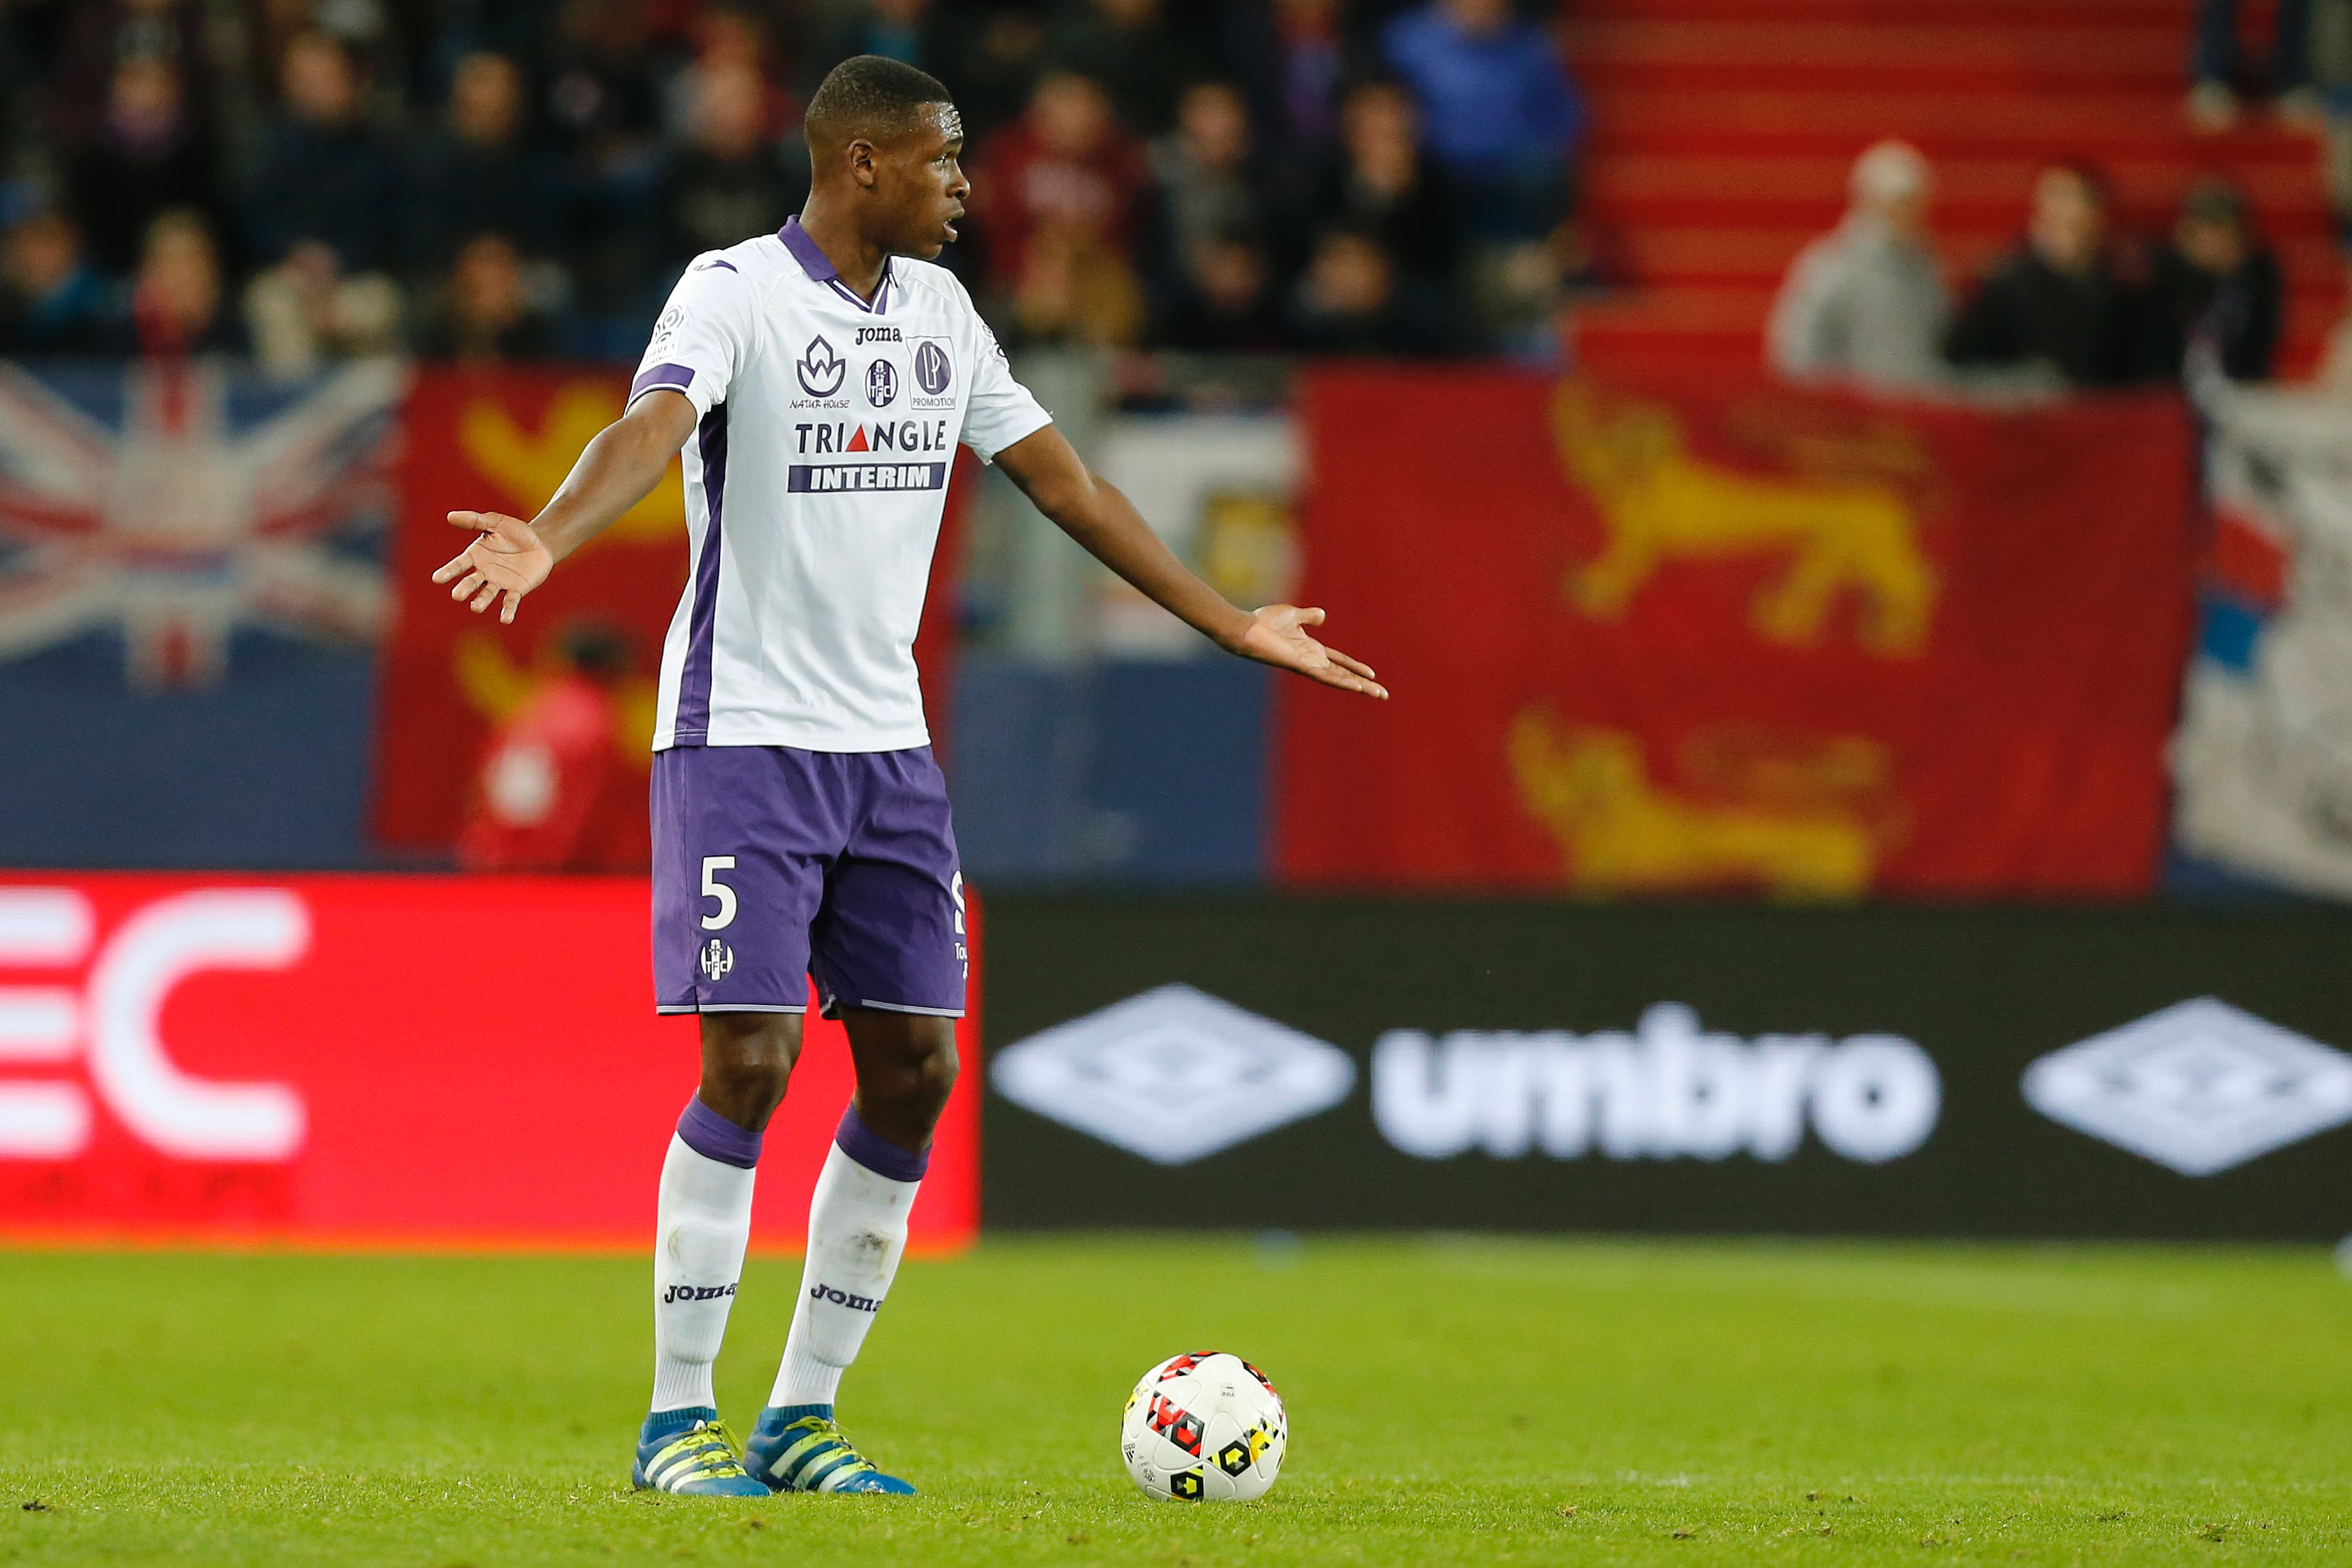 Issa Diop Toulouse ligue 1 2016